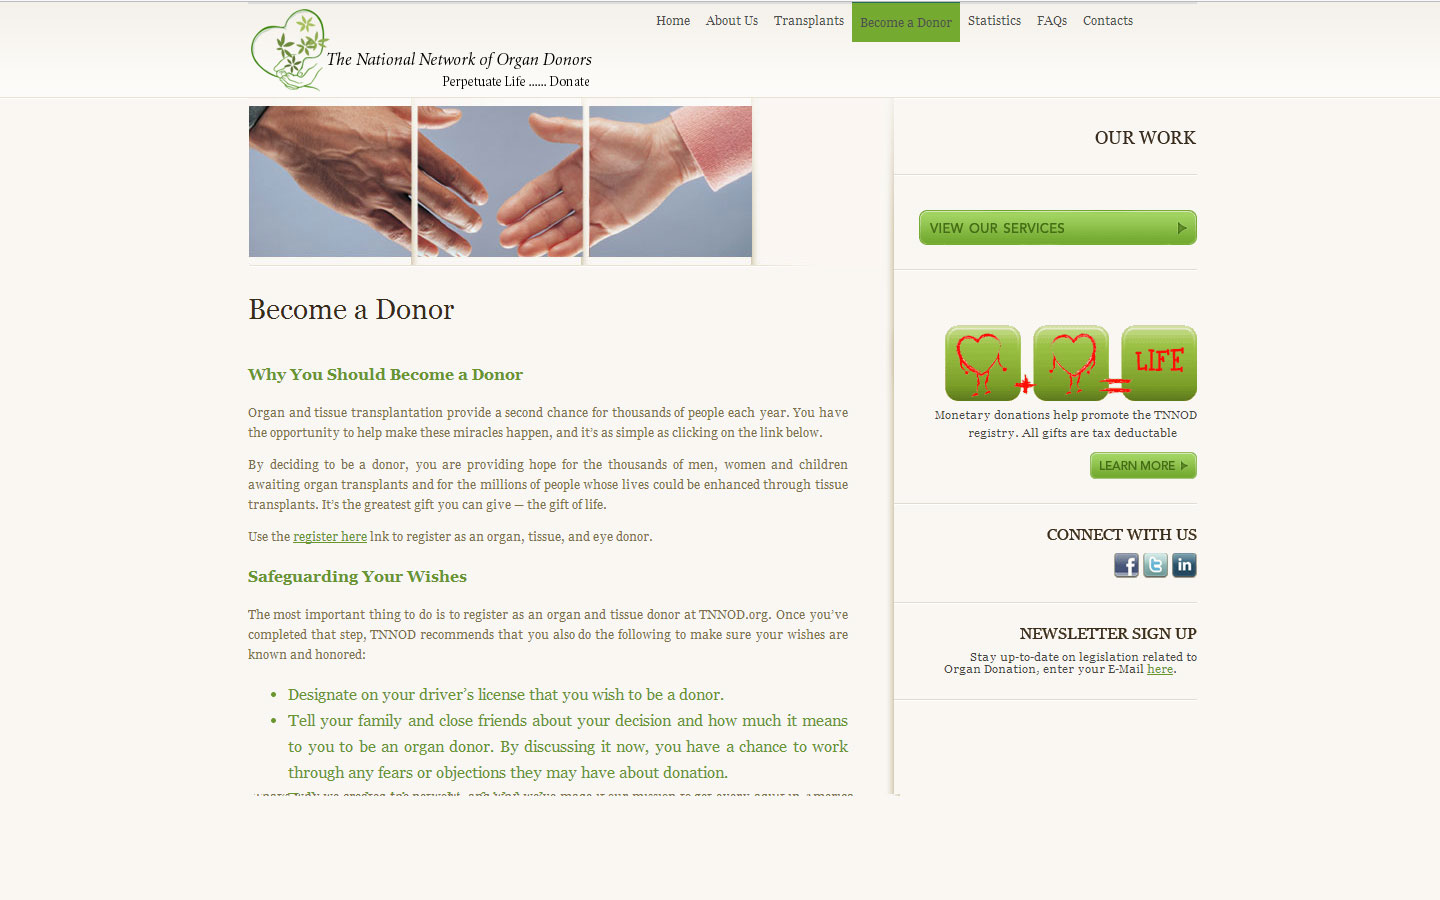 The National Network of Organ Donors